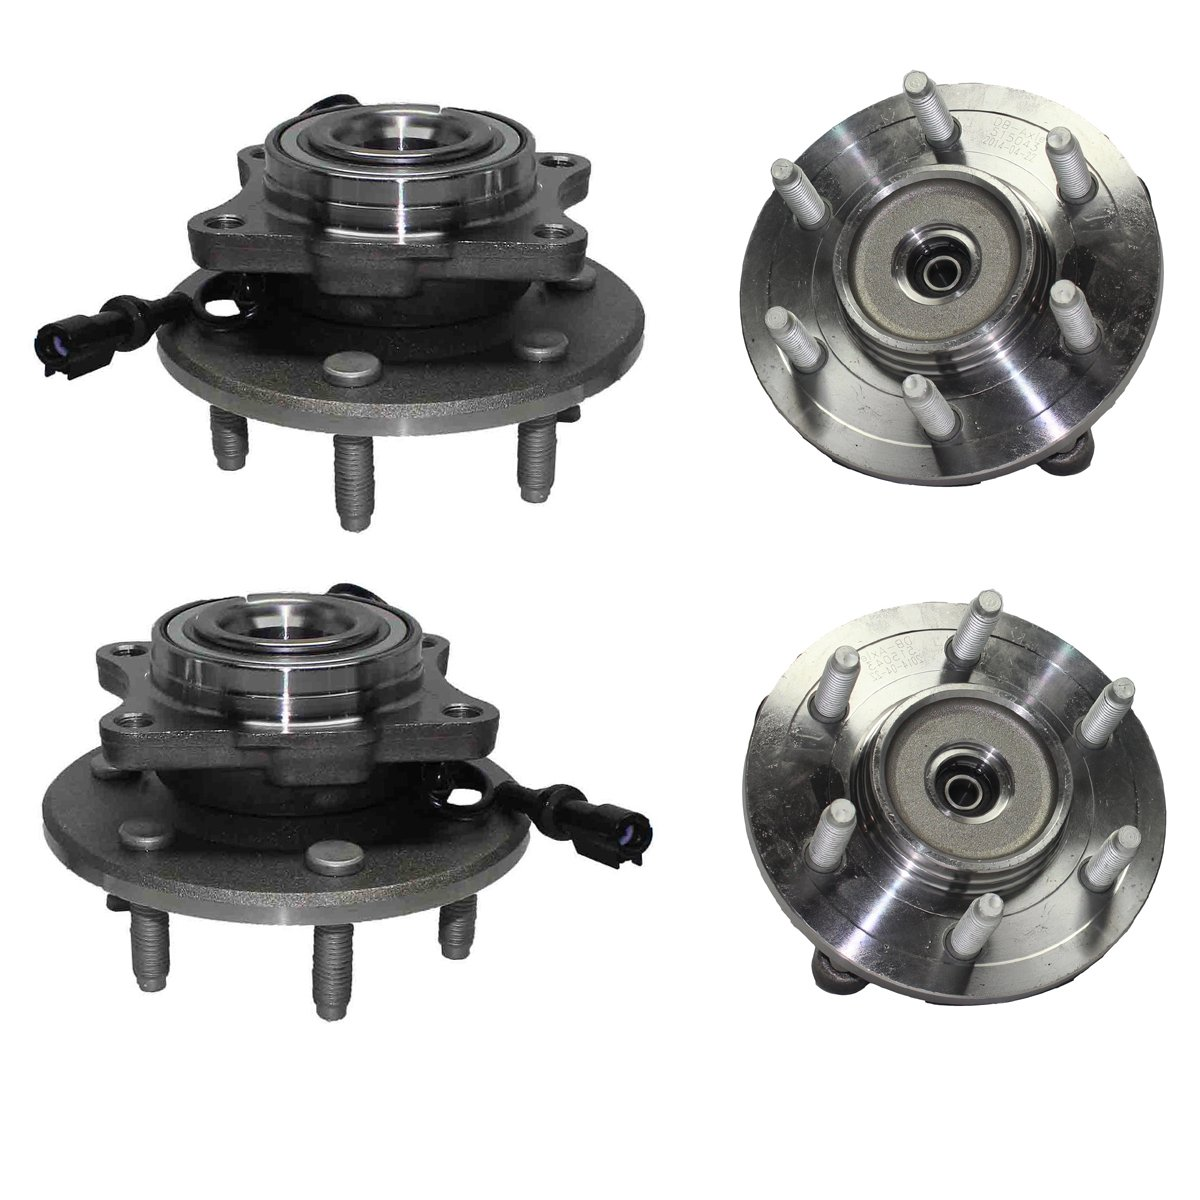 Detroit Axle - Front Wheel Bearing and Rear Hub Assembly Set for 2003 2004 2005 2006 Ford Expedition 4WD [2003-2006 Lincoln Navigator 4WD]